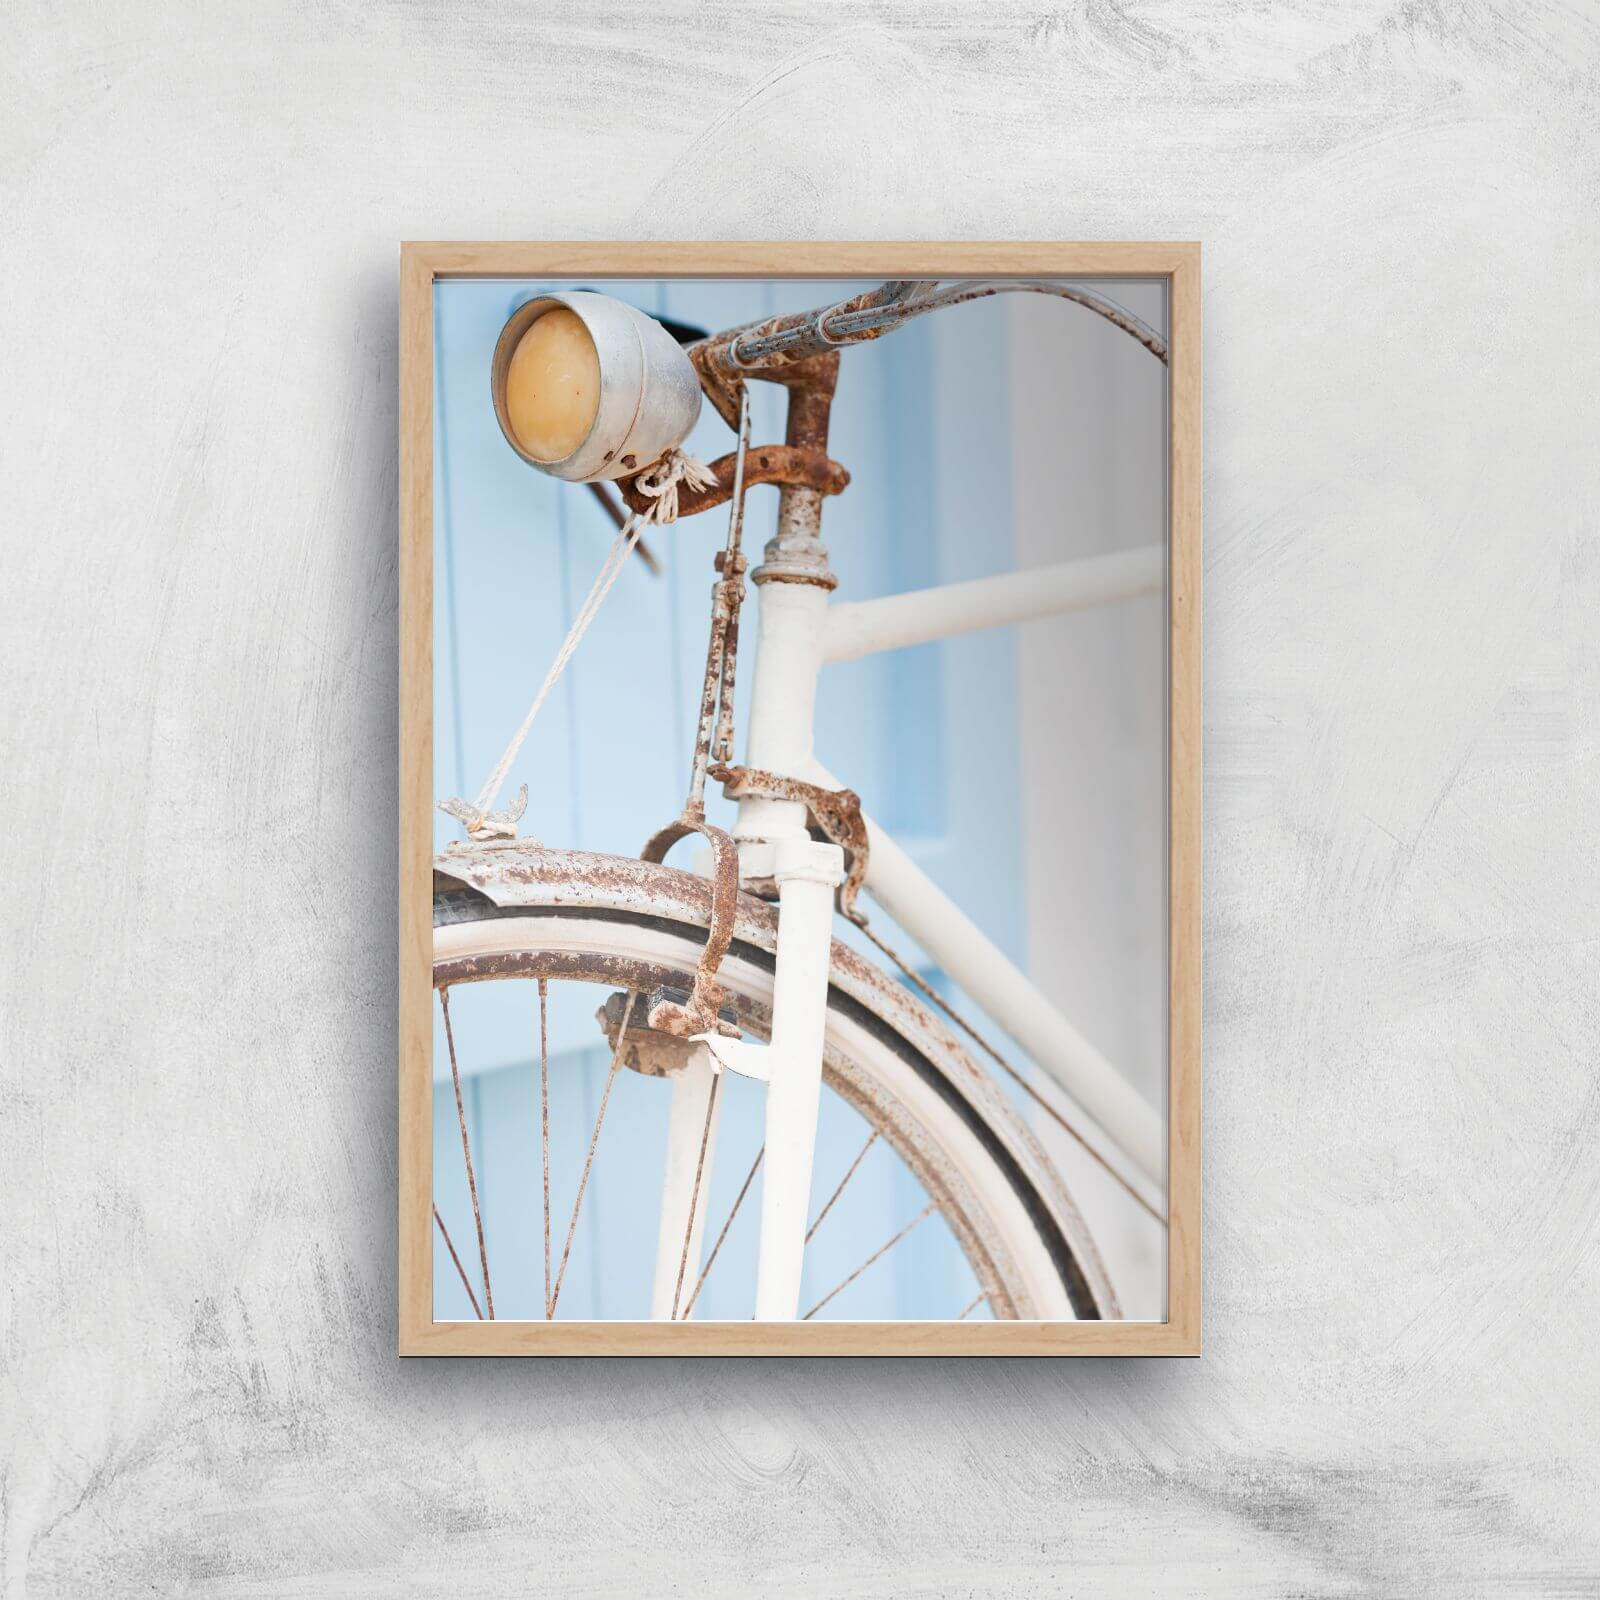 Rusty Bicycle Giclee Art Print   A4   Wooden Frame